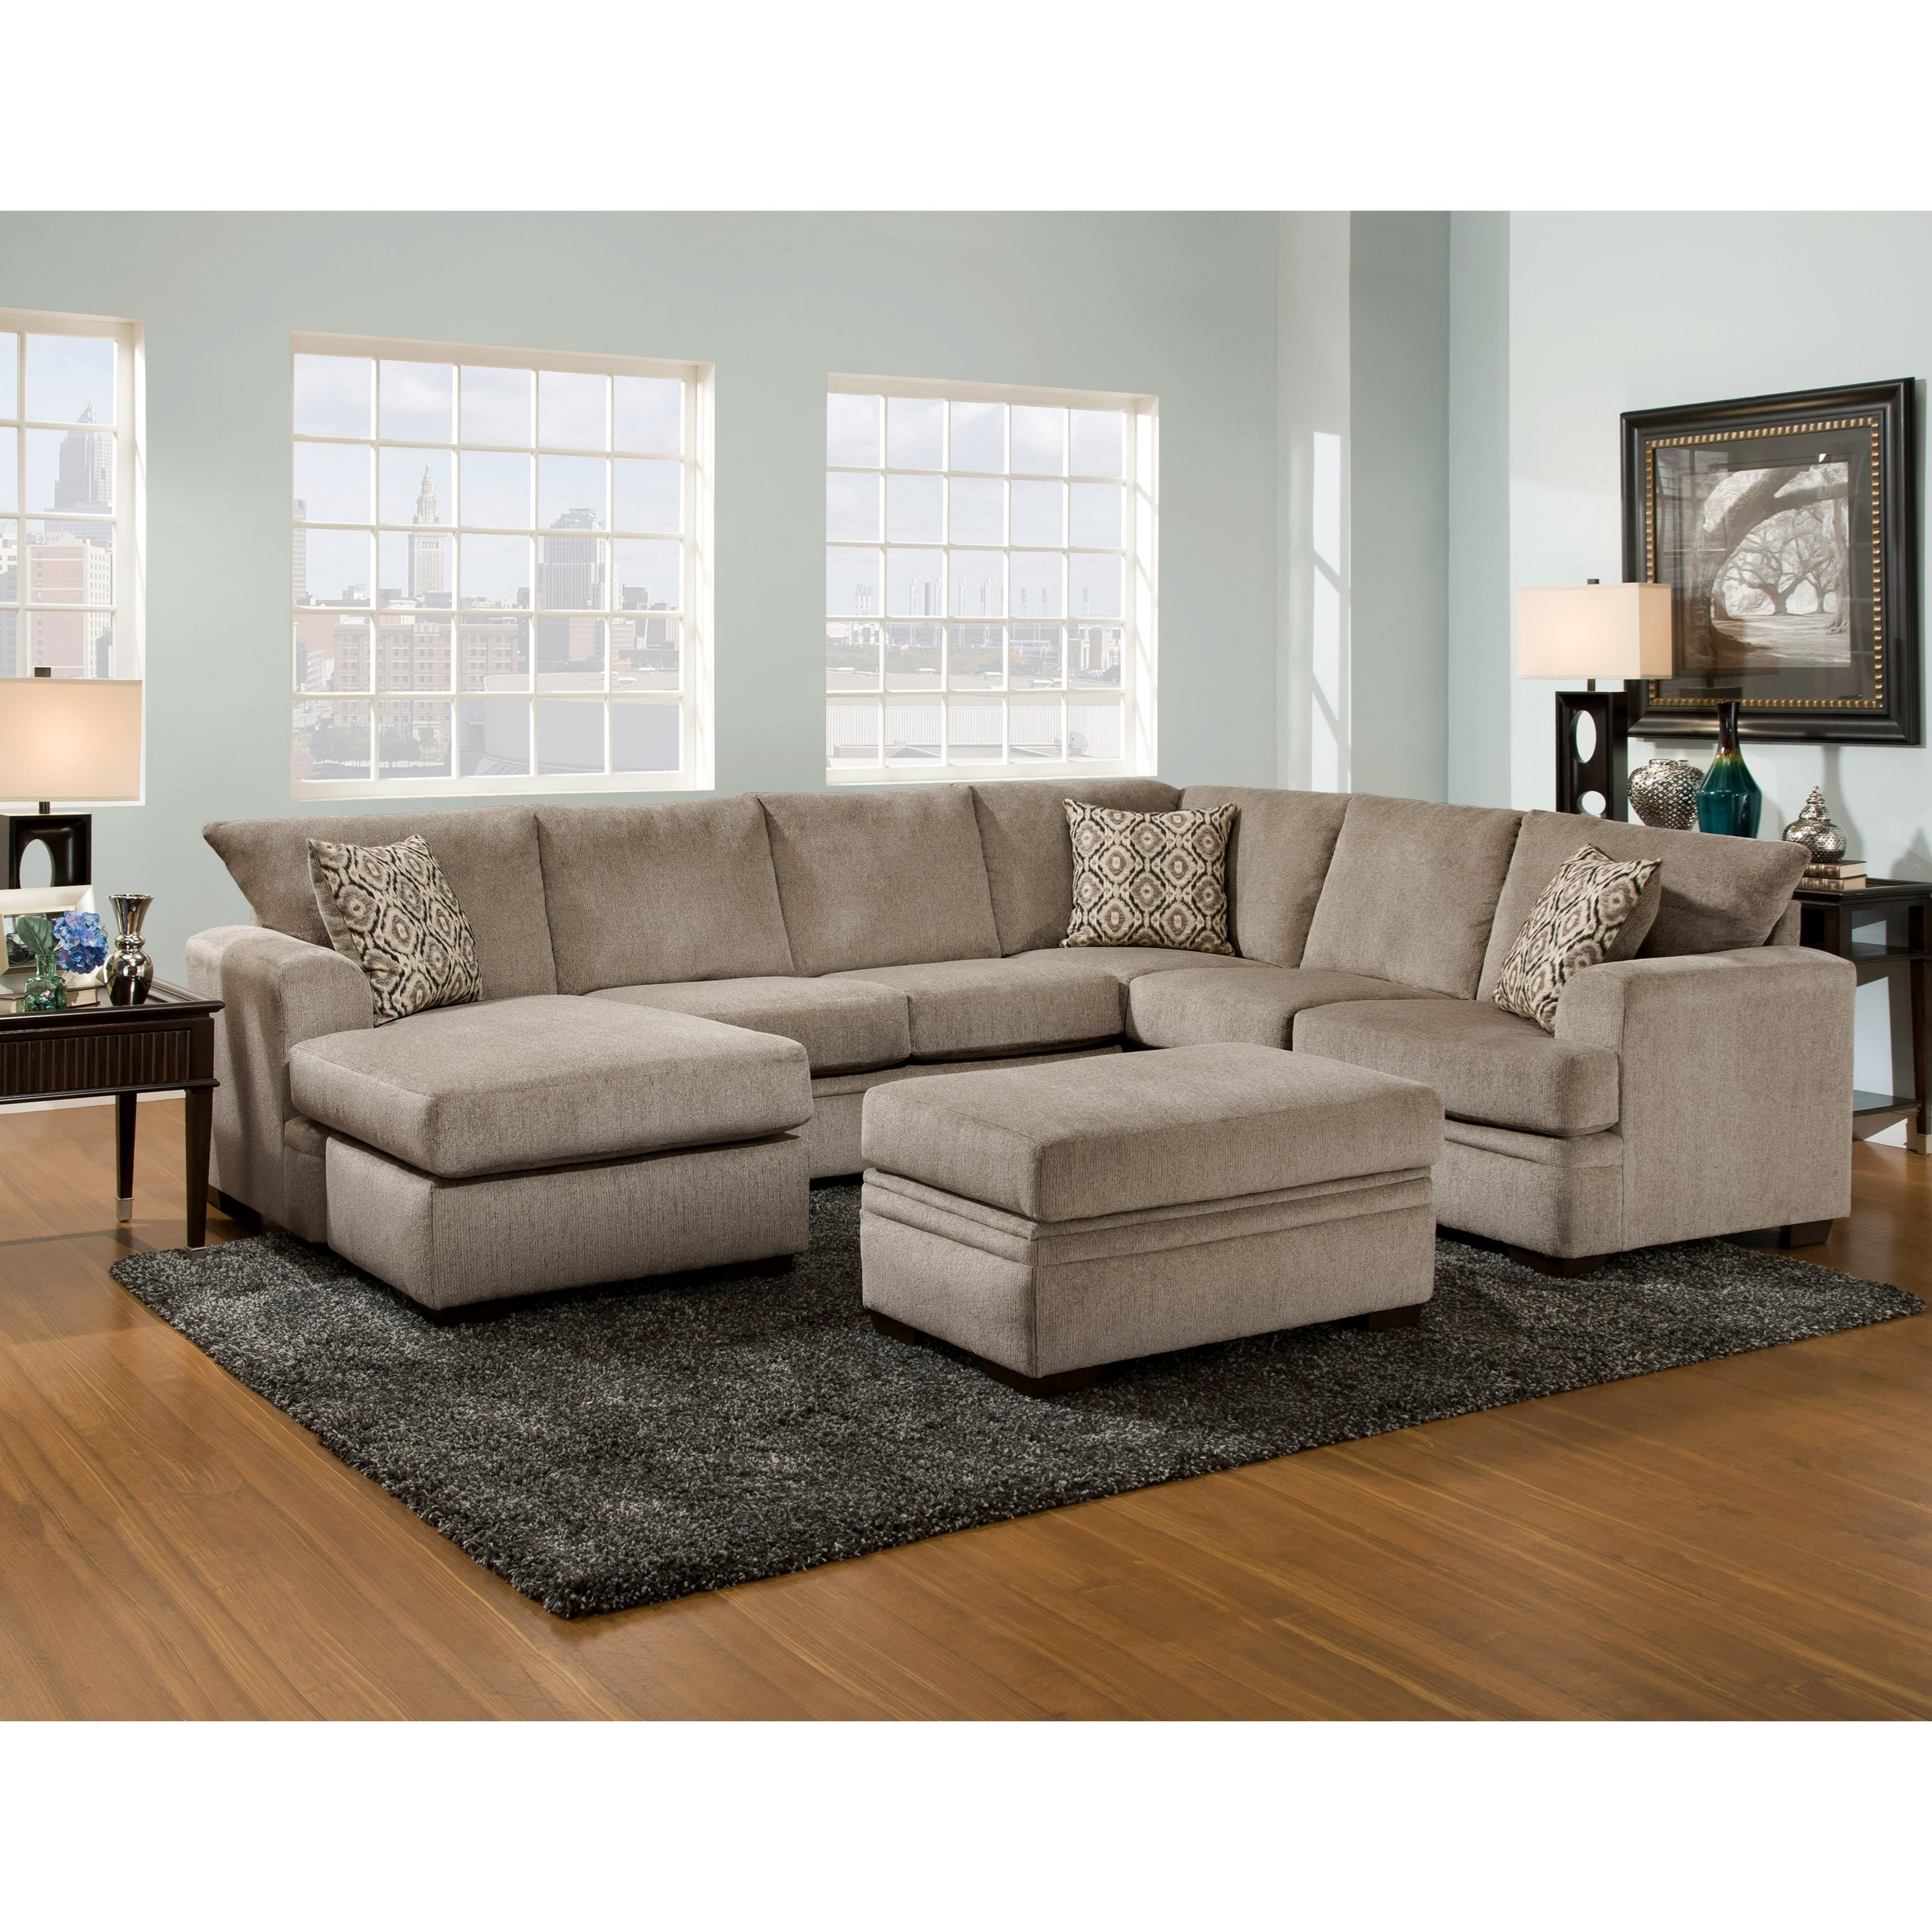 6800 Sectional Sofa with Left Side Chaise by Peak Living at Prime Brothers Furniture